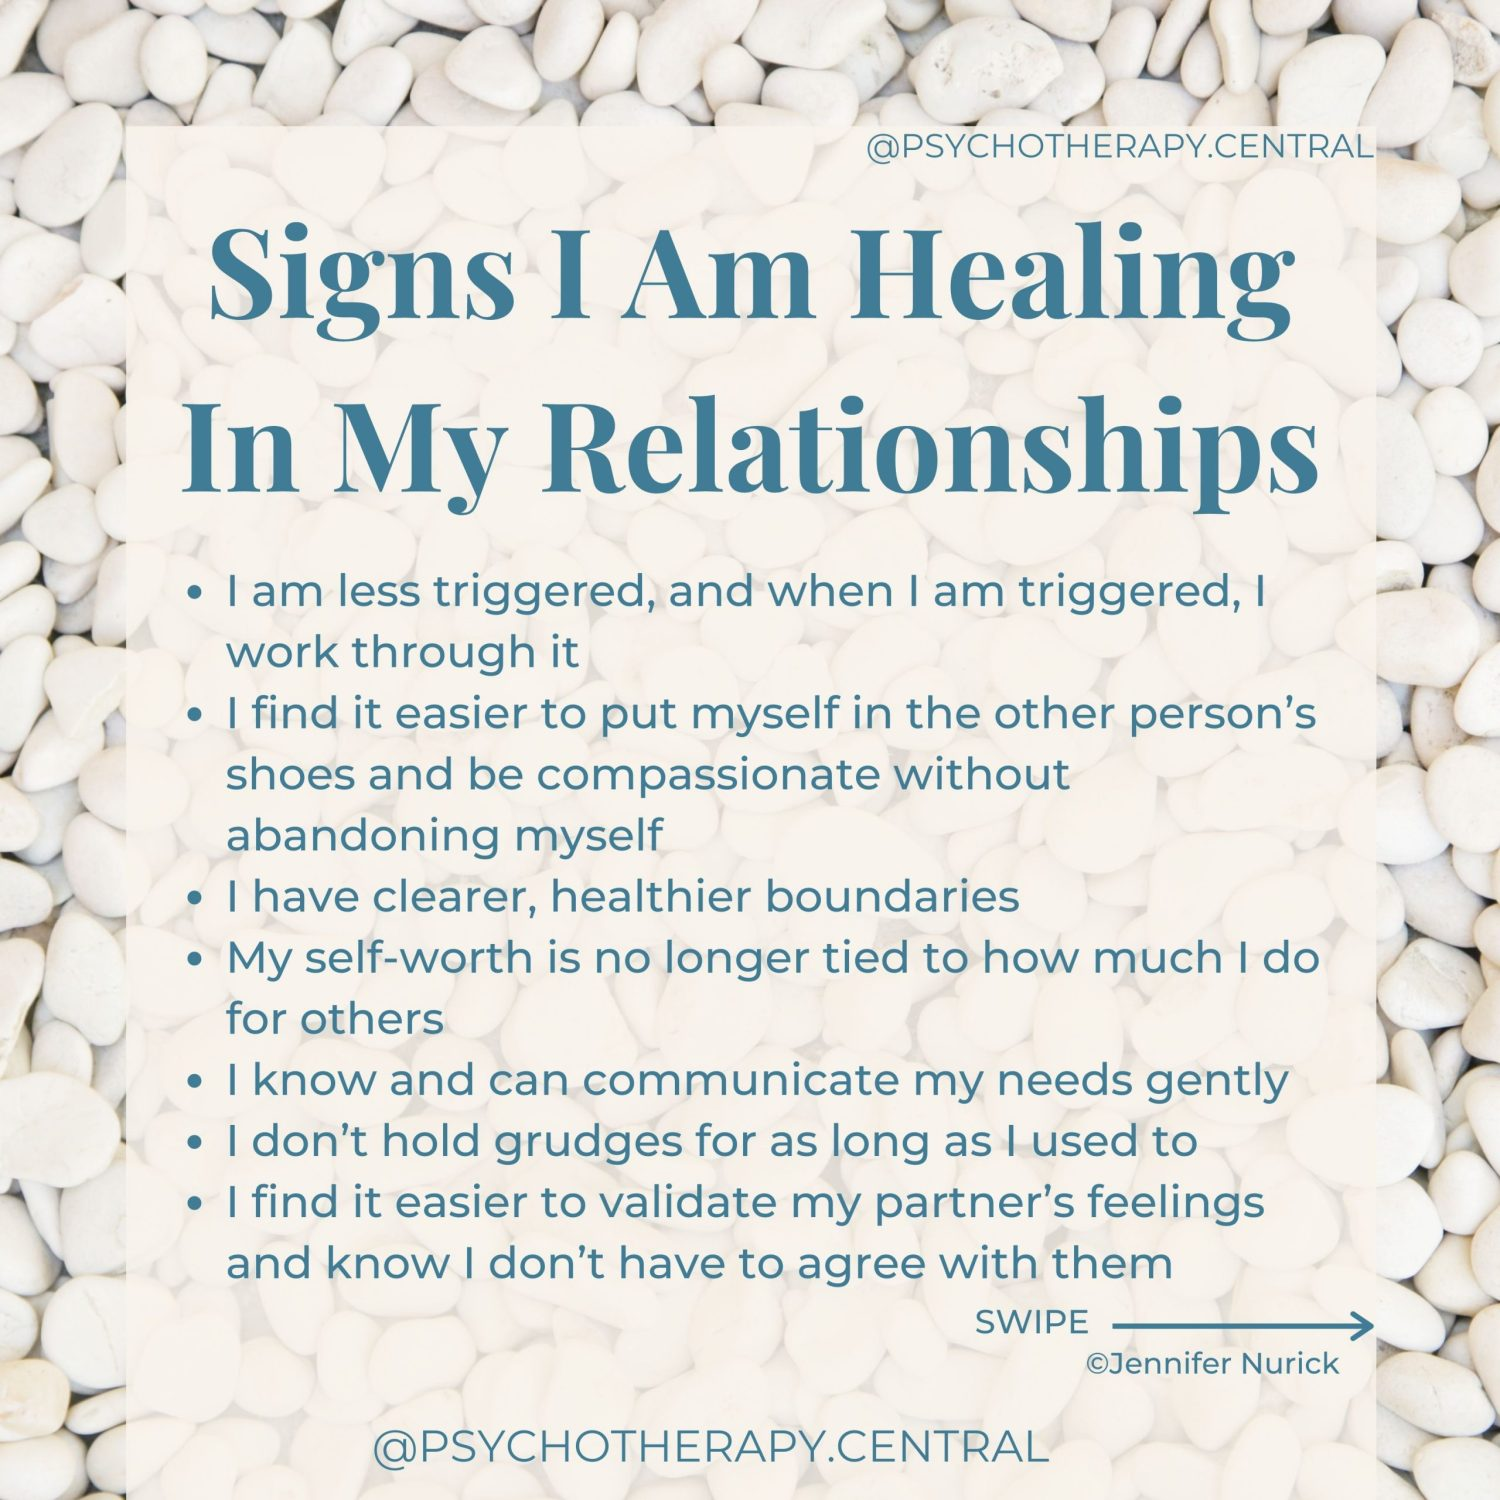 Signs I Am Healing In My Relationships I am less triggered, and when I am triggered, I work through it I find it easier to put myself in the other person's shoes and be compassionate without abandoning myself I have clearer, healthier boundaries My self-worth is no longer tied to how much I do for others I know and can communicate my needs gently I don't hold grudges for as long as I used to I find it easier to validate my partner's feelings and know I don't have to agree with them I find it easier to trust and feel safe in relationships My relationships are interdependent, not co-dependent I can self-soothe I find myself playing fewer games in my relationships I know I am loveable even if this is not being shown to me by others I experience more frequent, successful repairs